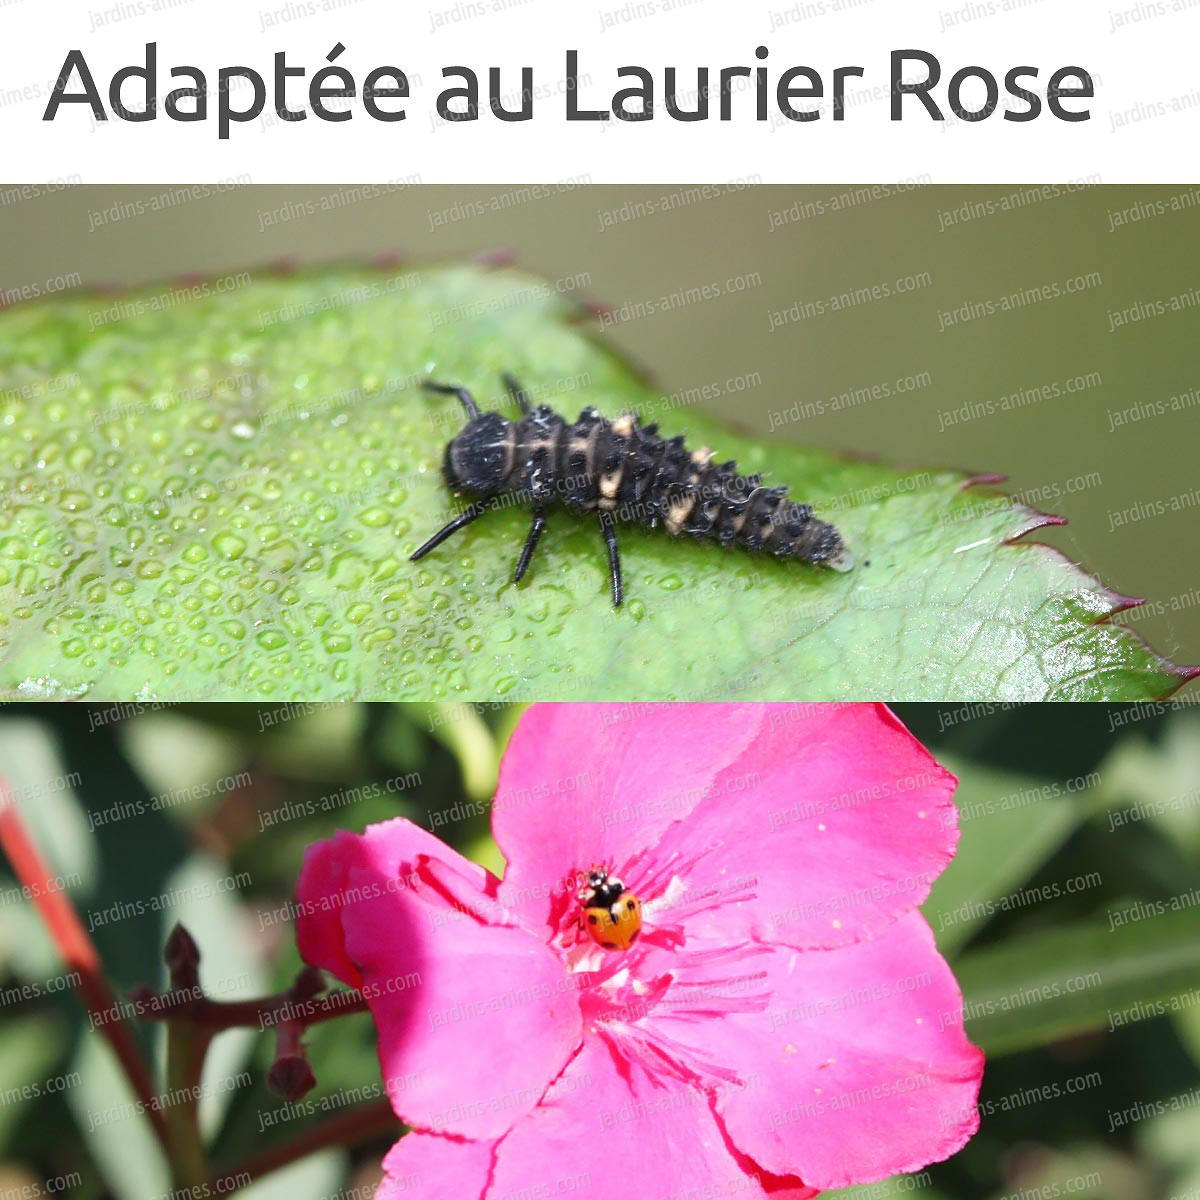 Cultiver un laurier rose en pot - Comment faire des boutures de laurier rose ...